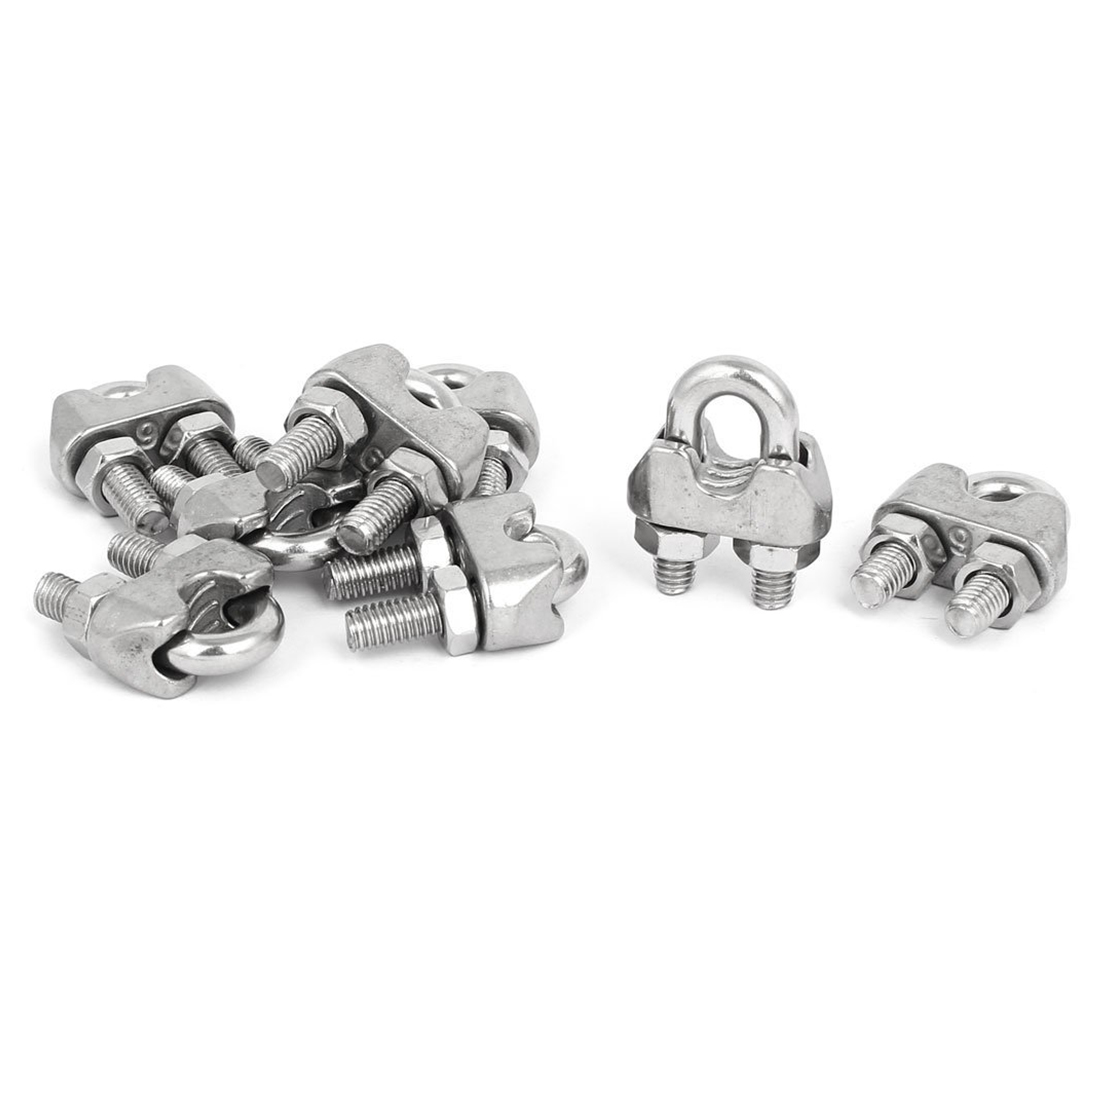 Dsha -m6 1/4 Inch 304 Stainless Steel U-shape Bolt Saddle Clamps Cable Wire Rope Clips 8 Pcs